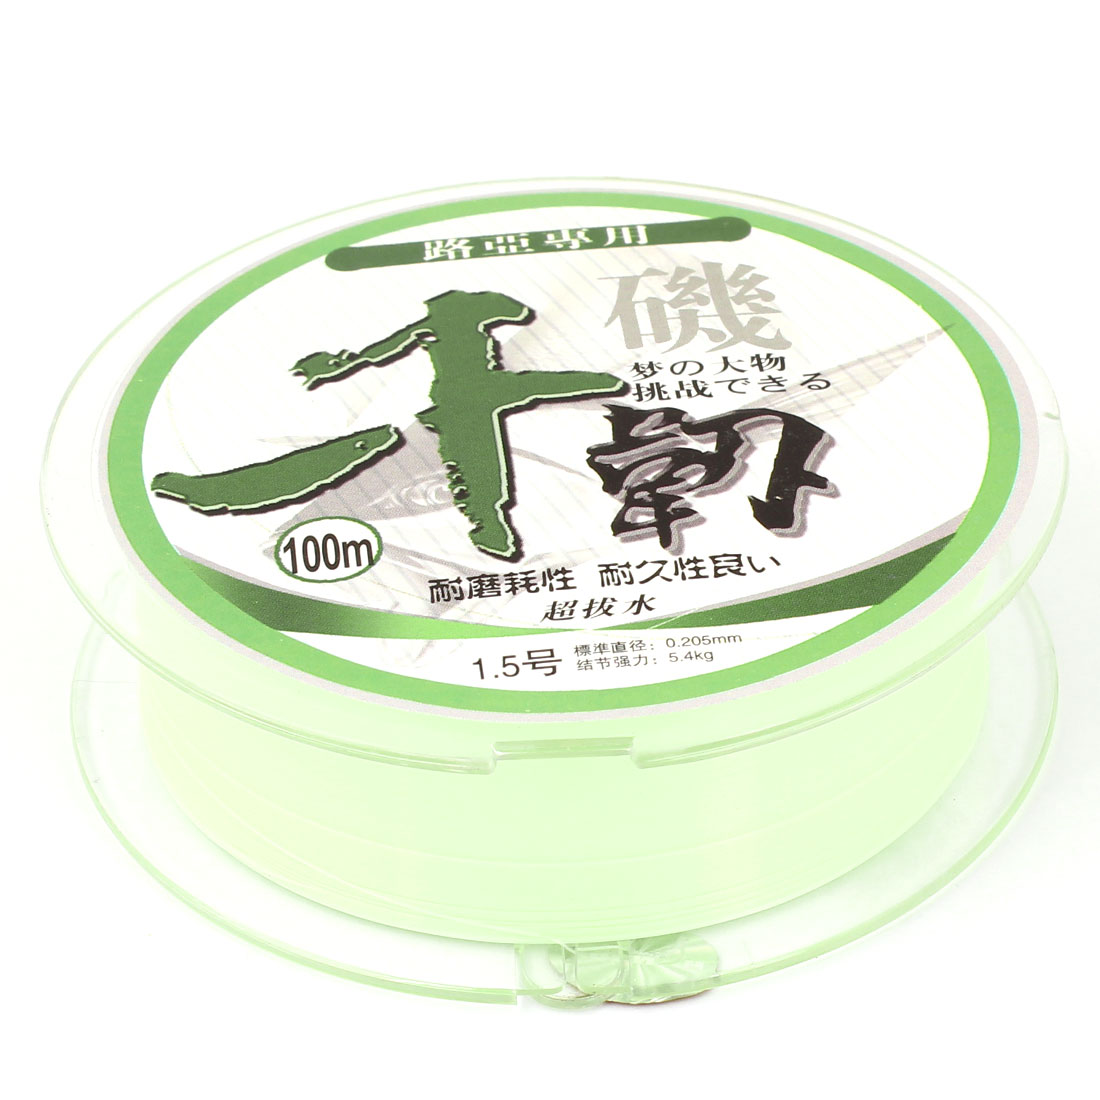 5.4Kg 11.9 lb 0.205mm Dia 100M Light Green Nylon Fishing Spool Line String